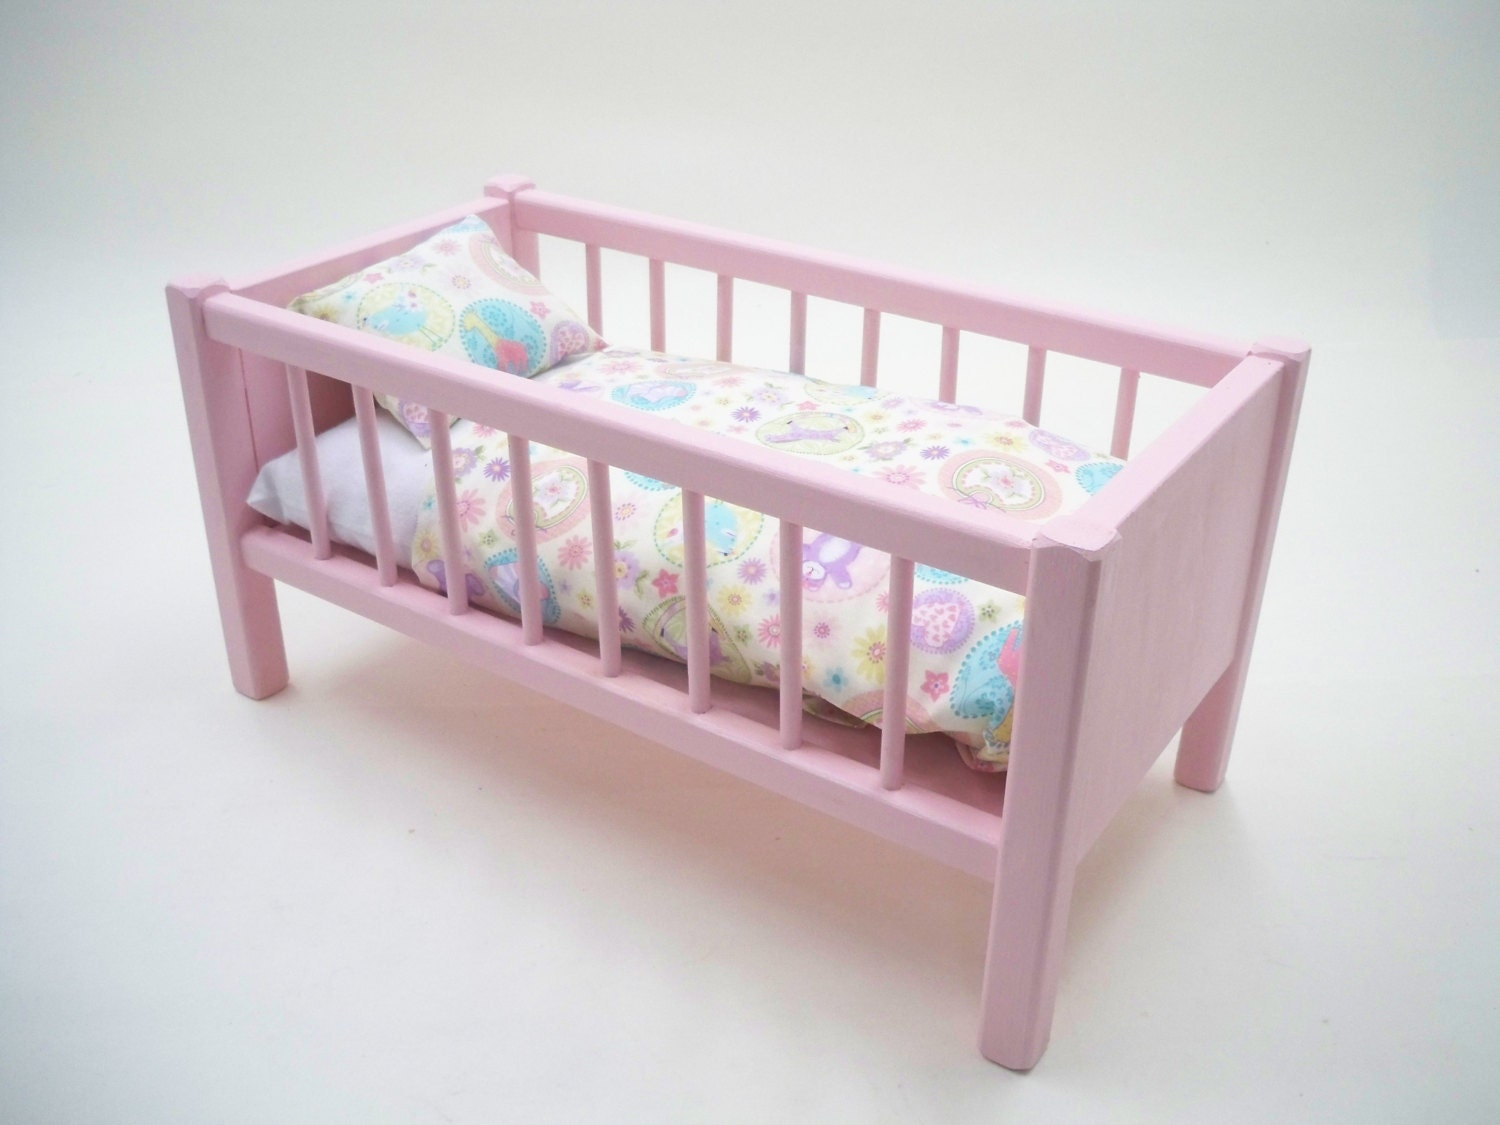 Baby cribs in ghana - Wood Doll Bed Doll Bed American Doll Bed Doll Crib Girls Toy 18inch Doll Bed Baby Doll Crib Baby Doll Bed